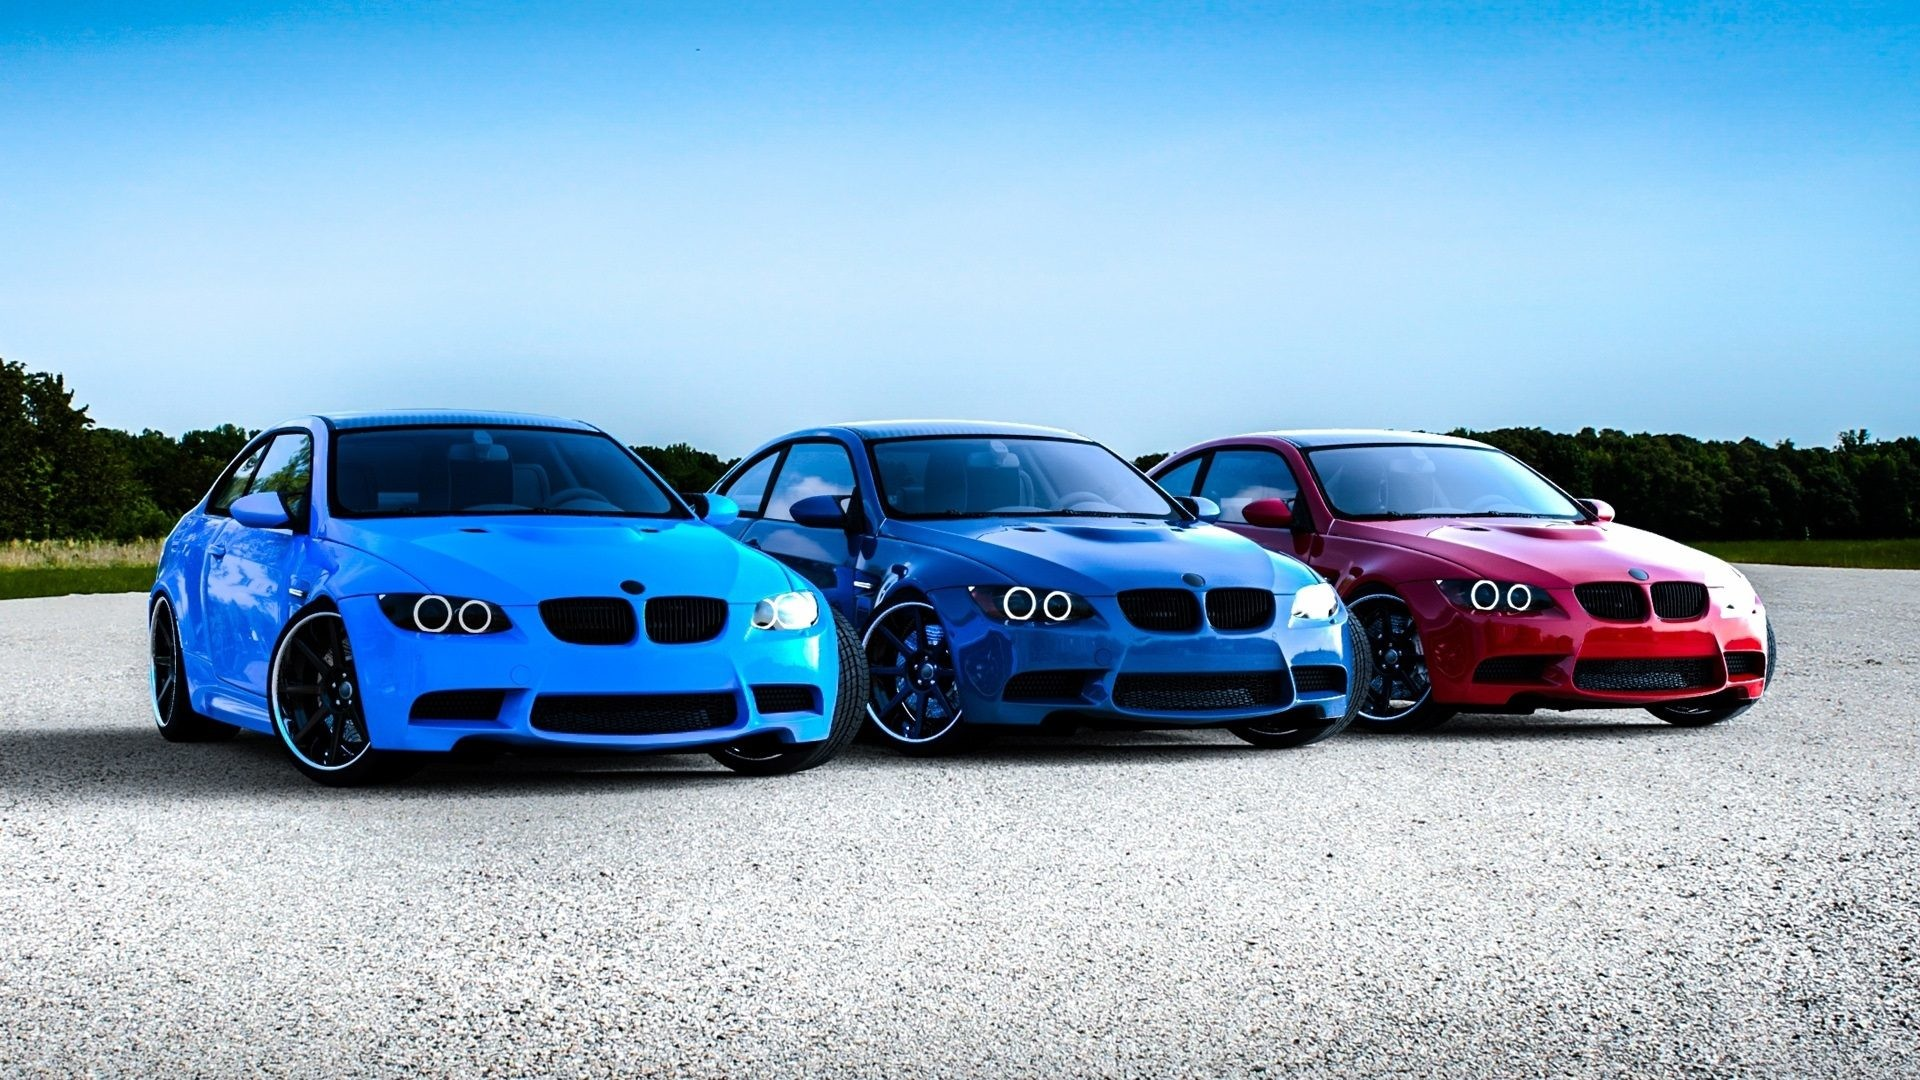 Bmw M3 E92 Red Blue Cars 4k Iphone Wallpaper Data Src Bmw M3 E92 1080p 1920x1080 Download Hd Wallpaper Wallpapertip